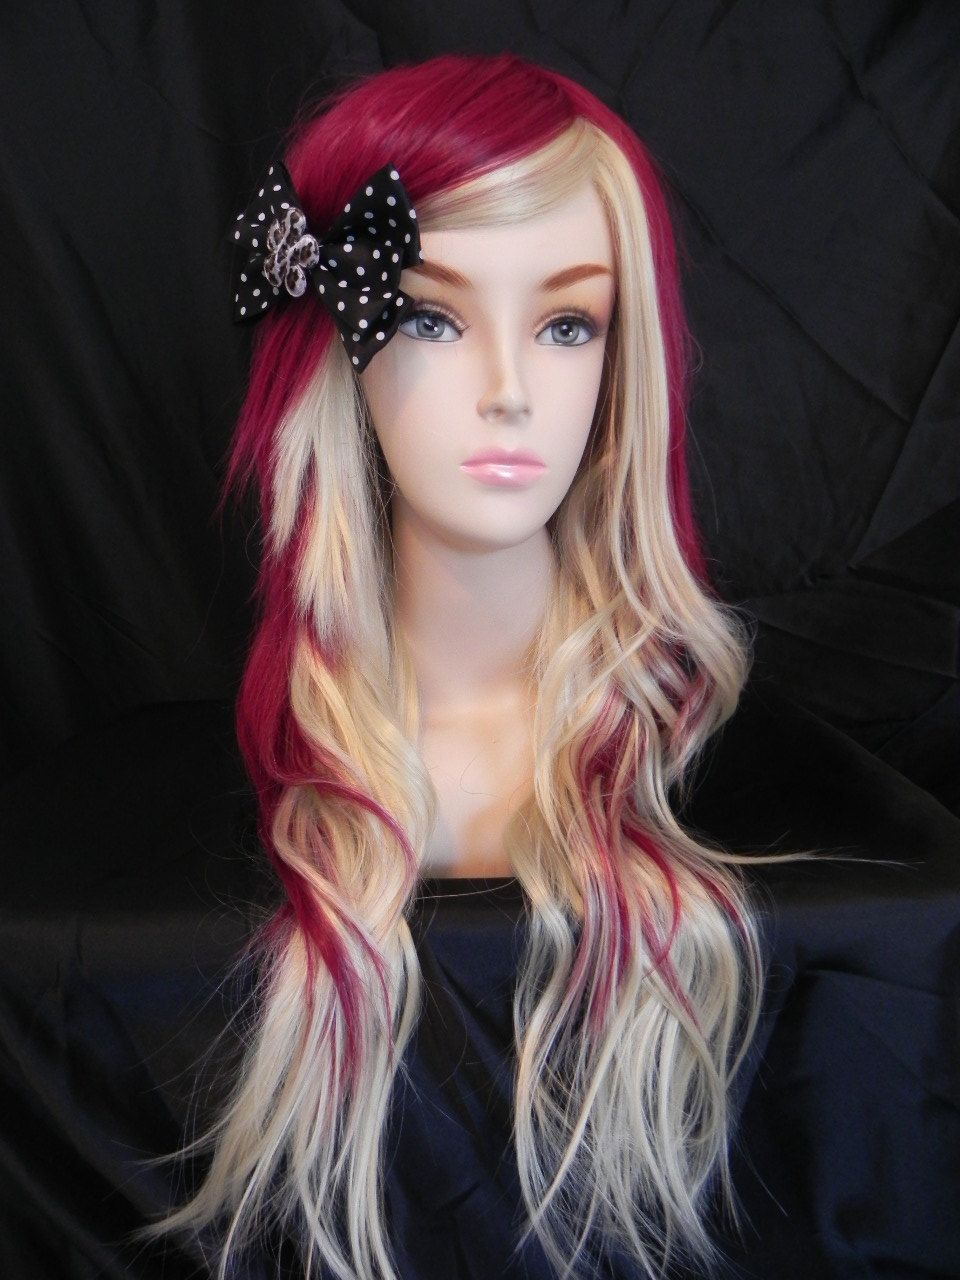 On sale strawberry cheesecake auburn red and blonde long curly